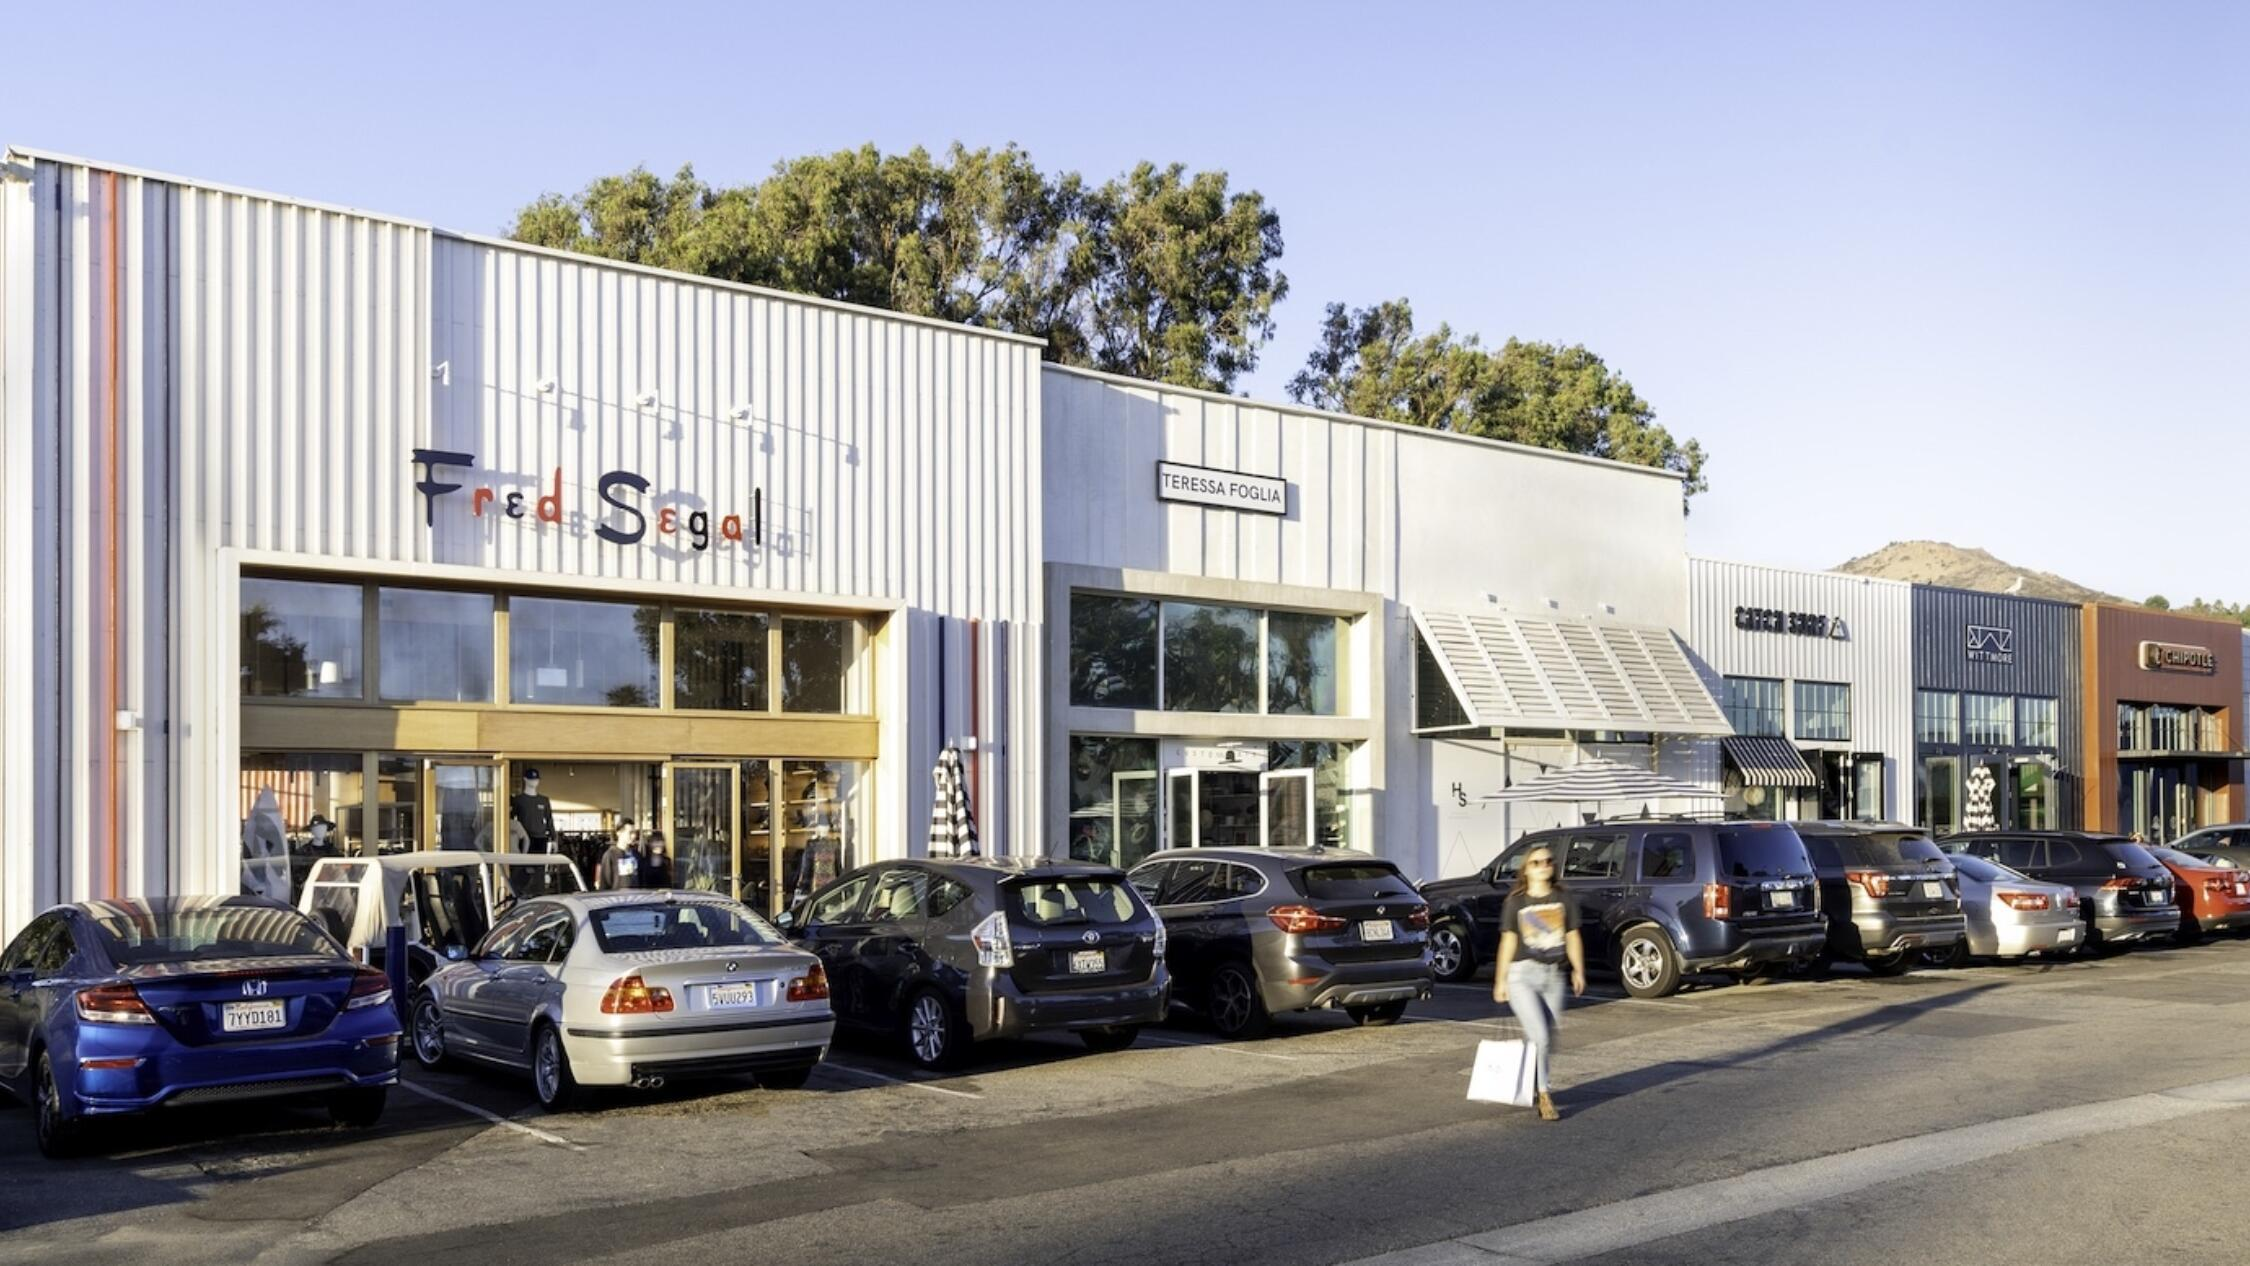 Exterior of Fred Segal at Malibu Village with shopper walking near cars parked in lot